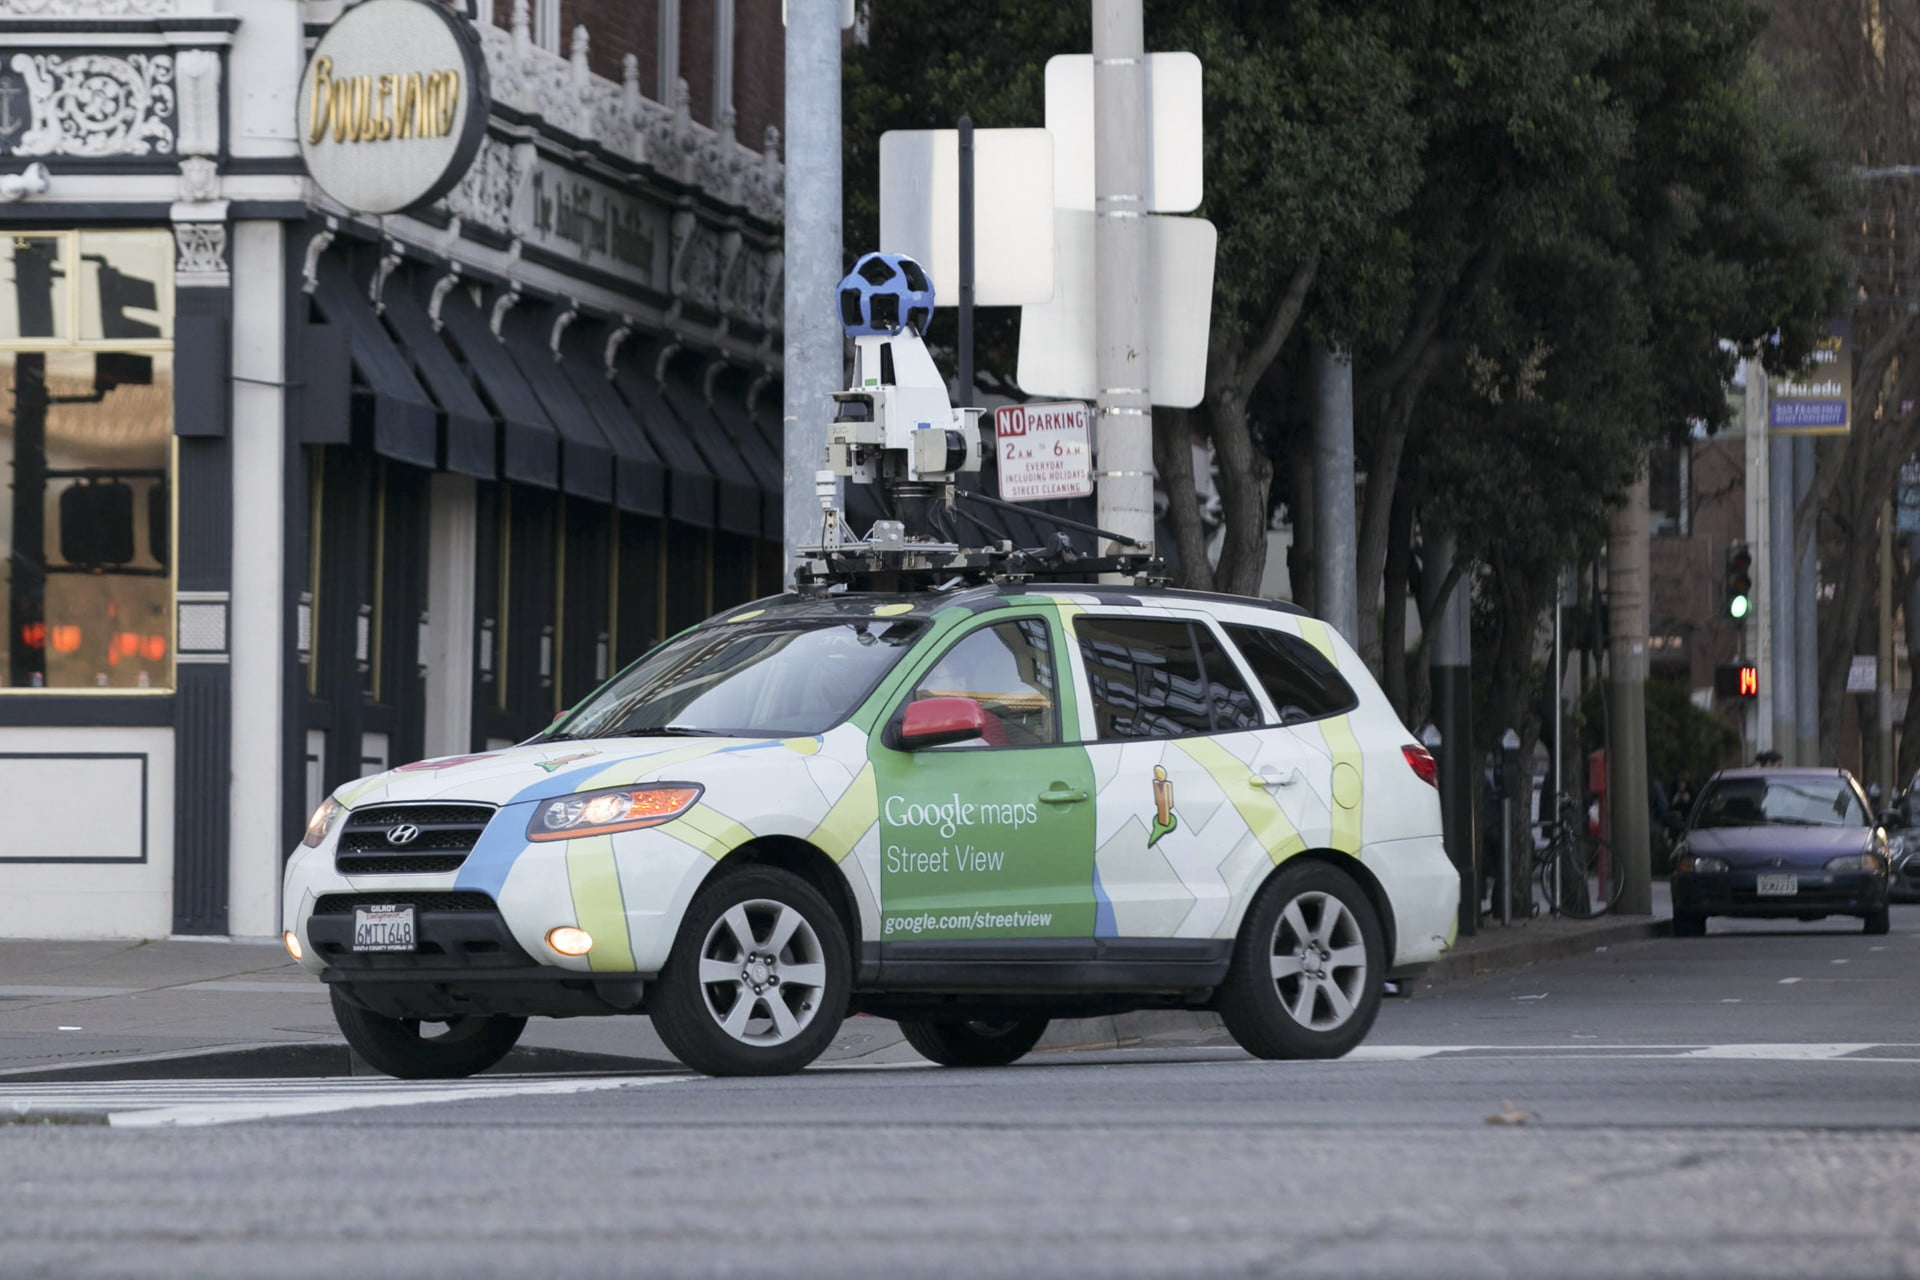 Google's Street View cars are helping build a giant map of ... on google street view in europe, aspen movie map, street view car, competition of google street view, google mapquest, city view from car, angry birds car, google search, google car that drives itself, microsoft car, camera car, google map us rivers, googlr maps car, google self-driving car, here maps car, google street view privacy concerns, google bruxelles map, google street view in oceania, google street view in latin america, google street view in asia, google earth, google vehicle, mapquest maps car, bing maps car, google street view in africa, google art project, coolest car, web mapping, google map person, google street view, google car crash, google street view in the united states,